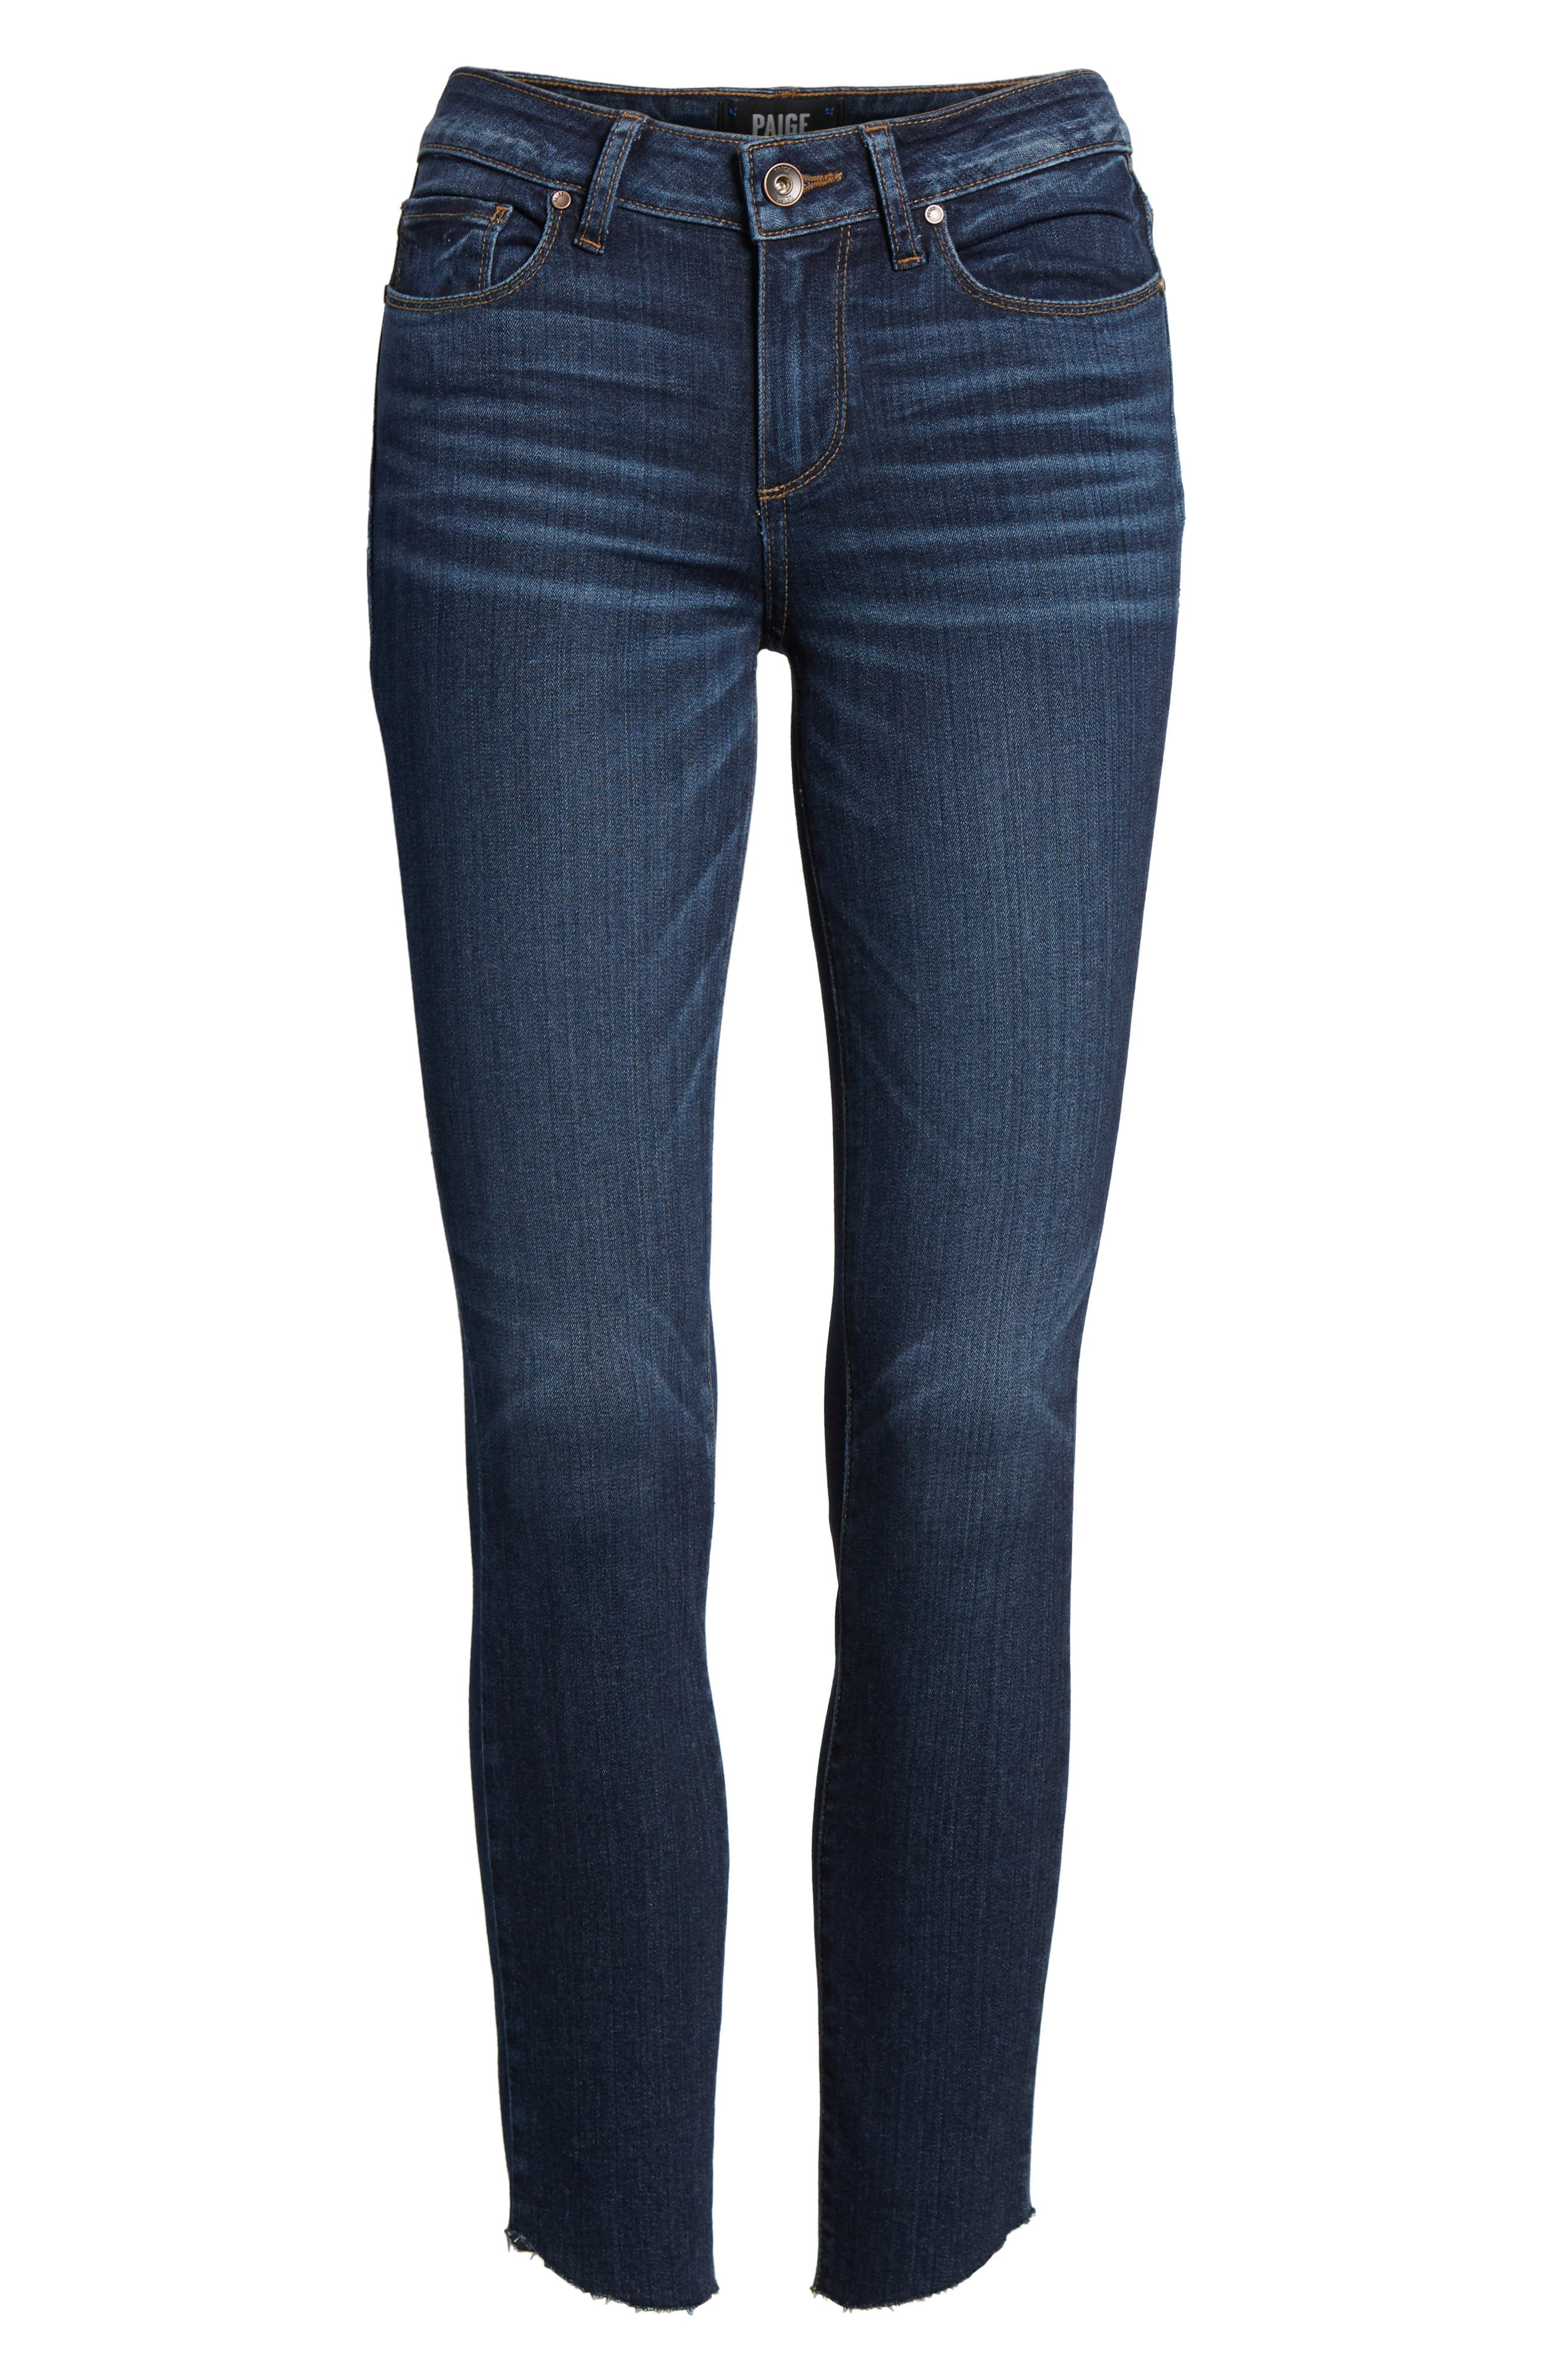 Transcend - Verdugo Ankle Ultra Skinny Jeans,                             Alternate thumbnail 6, color,                             400